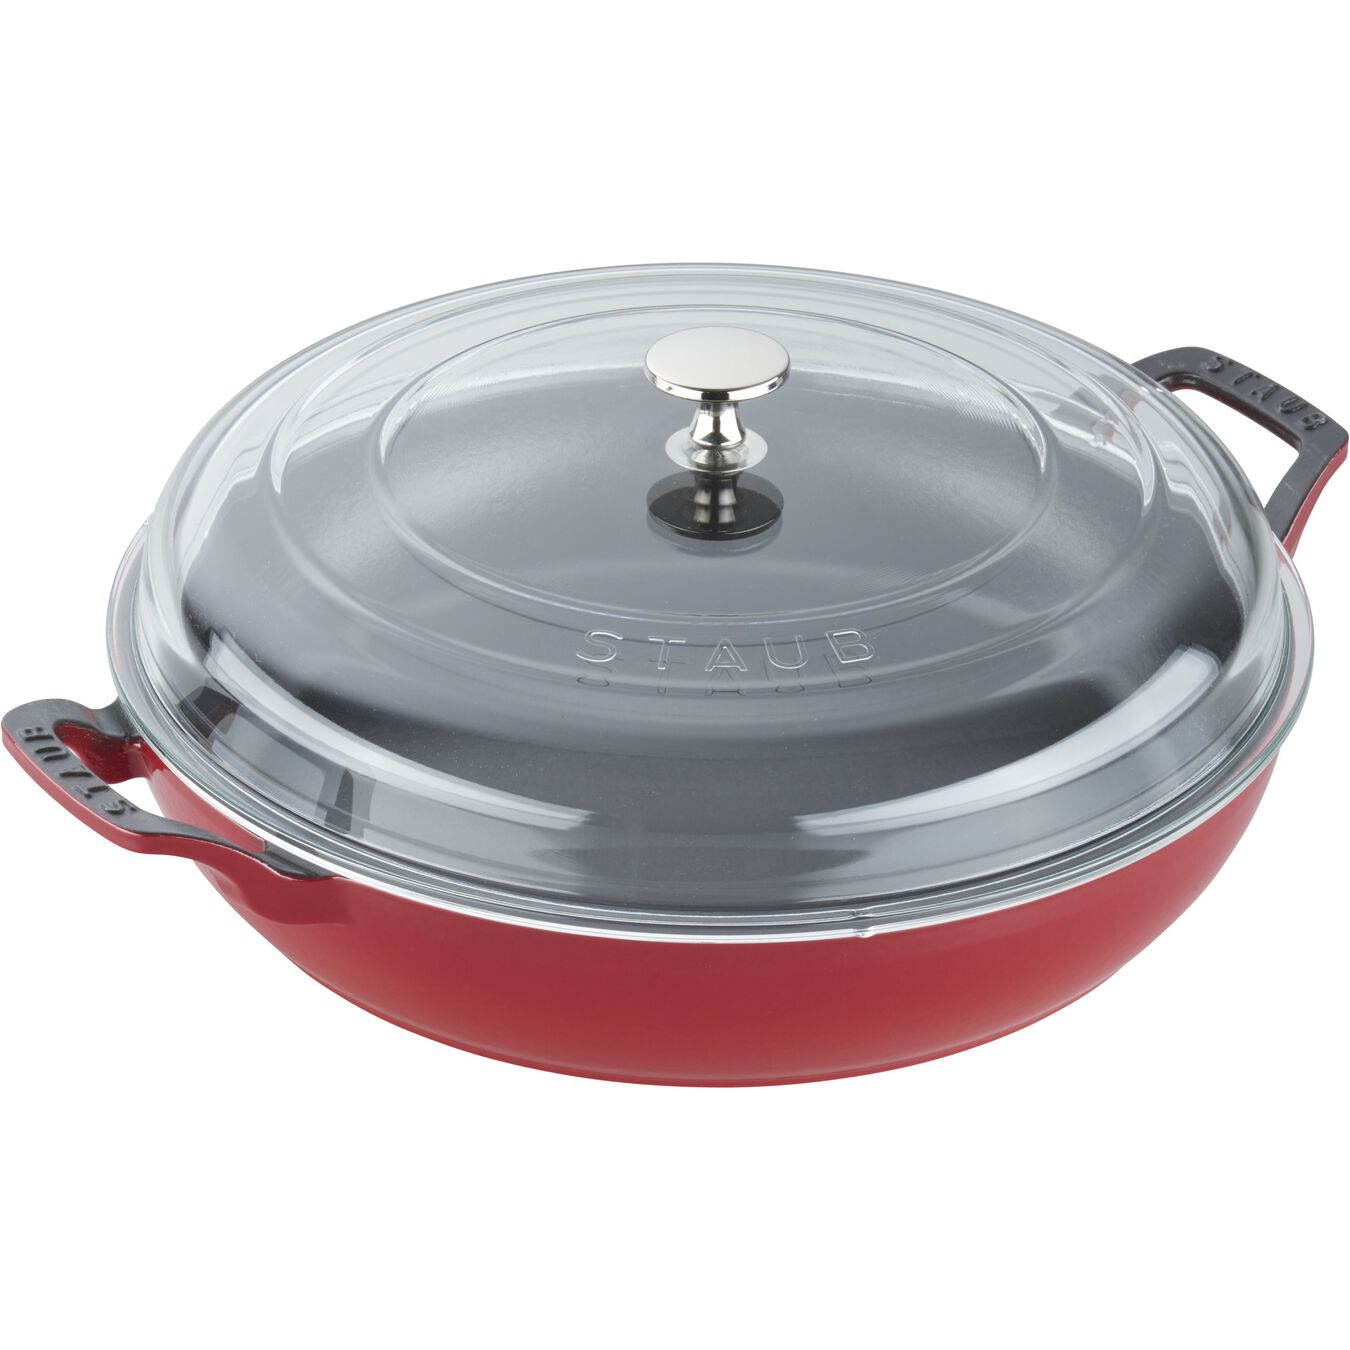 12-inch, Saute pan with glass lid, cherry,,large 3